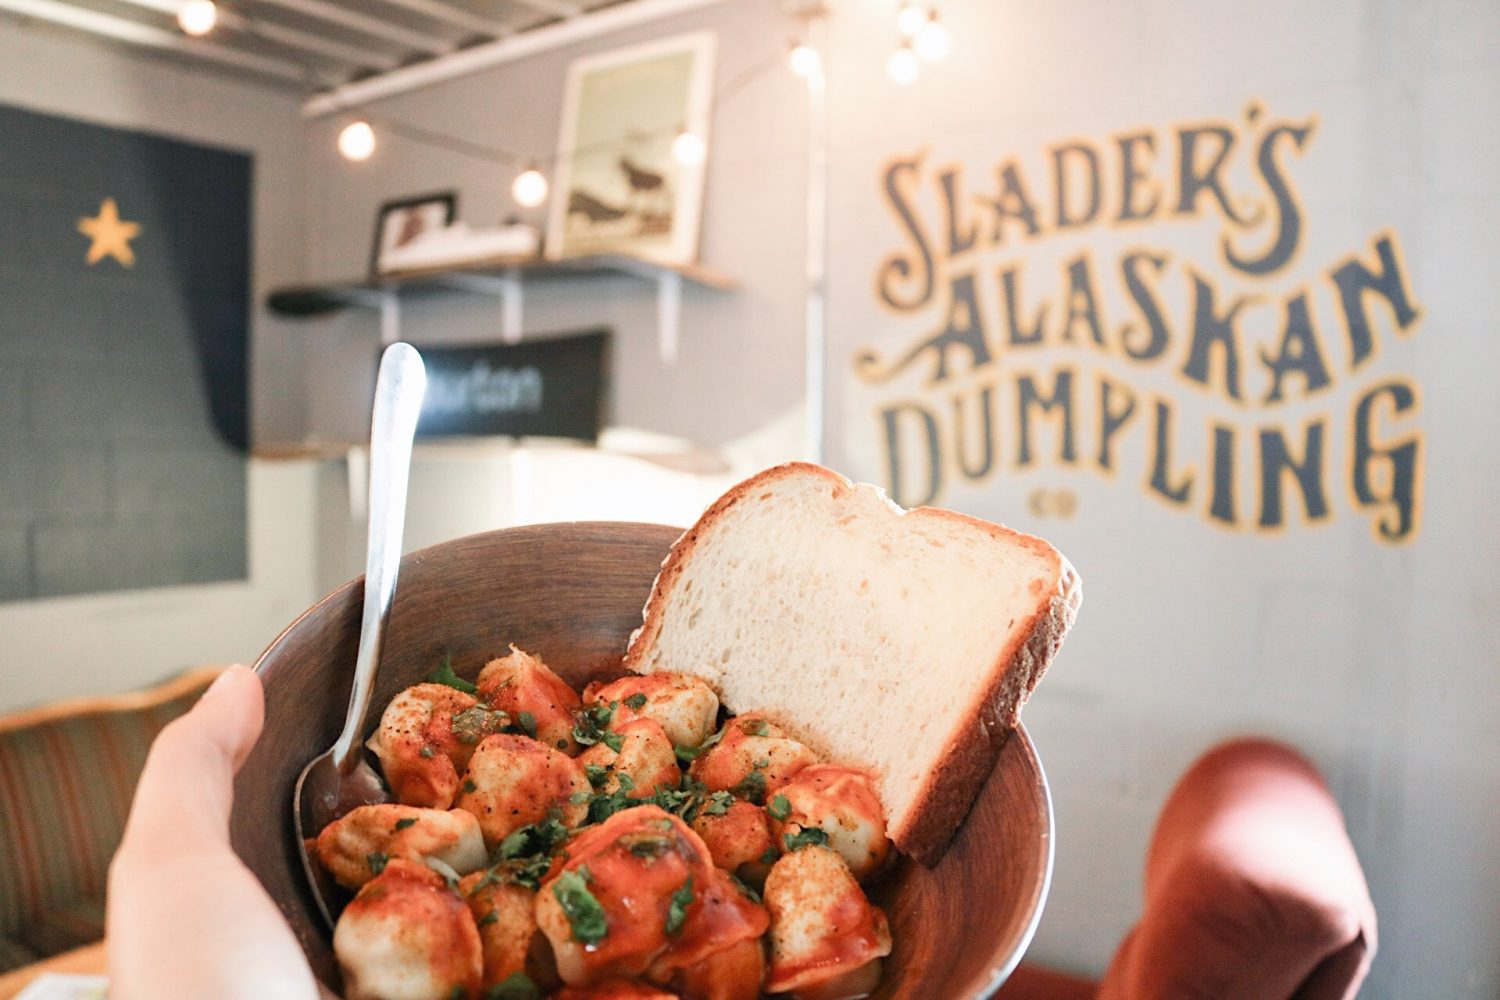 Shader's dumplings come in three flavors; chicken, beef, or potato, and come served with a slice of bread.